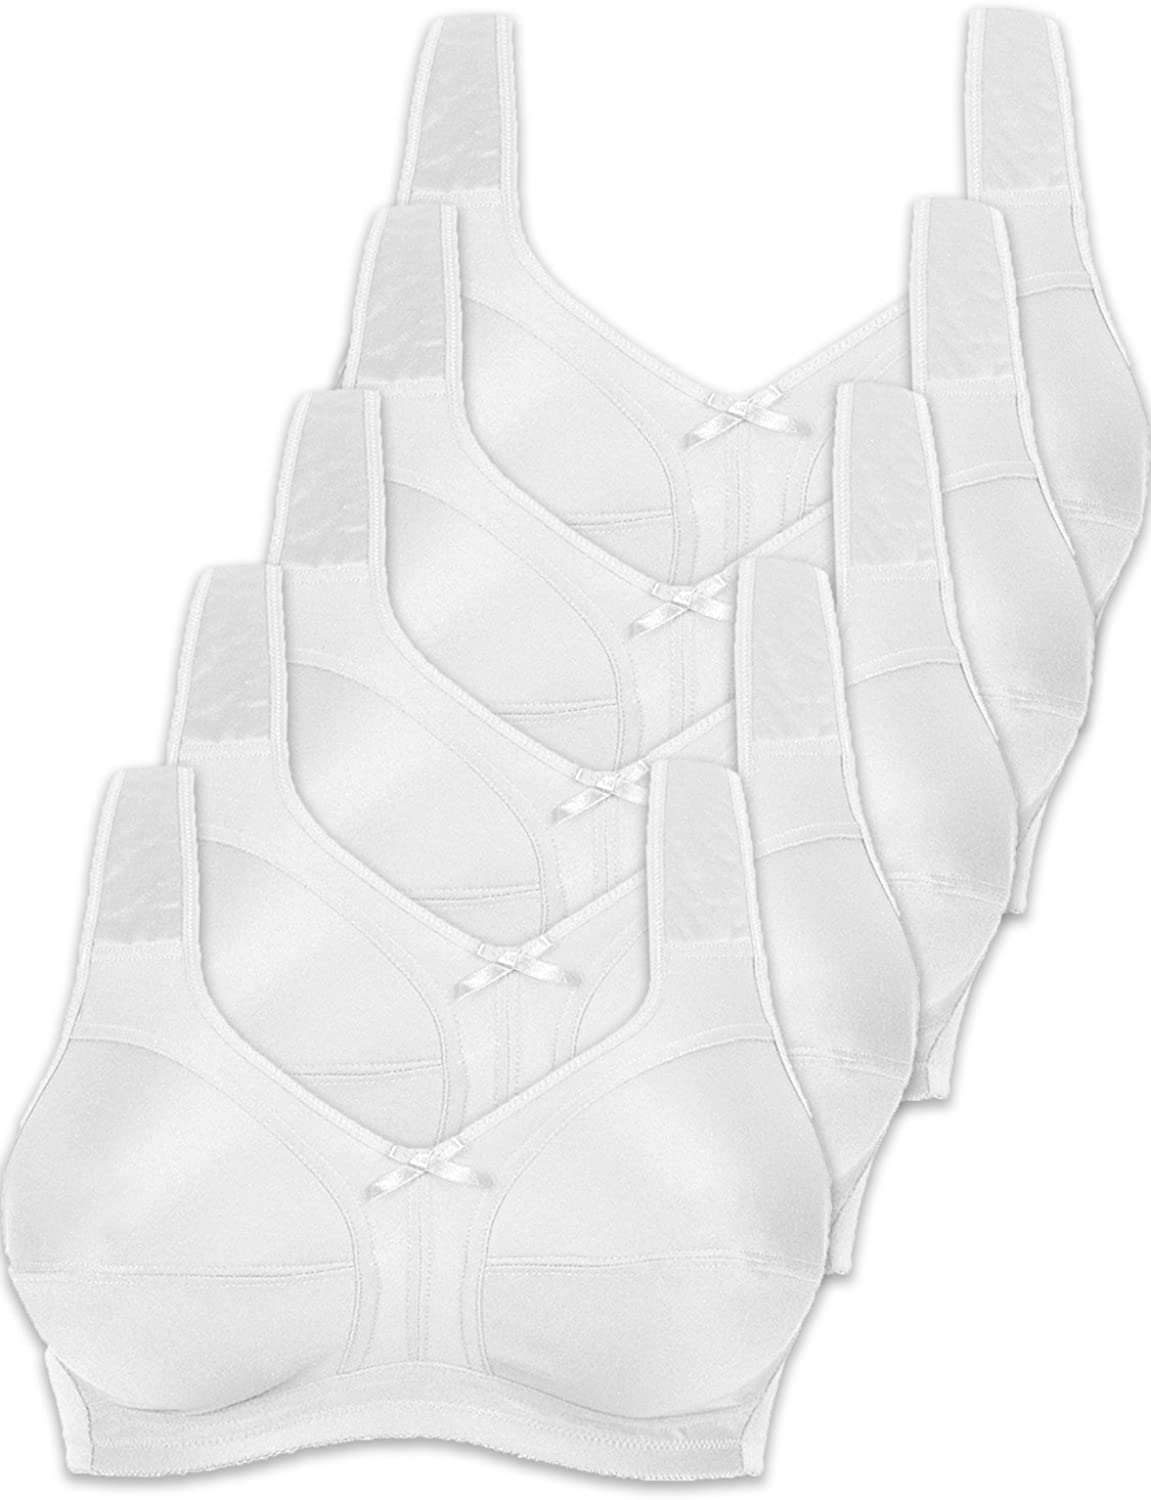 Naturana Pack of 5 NonWired Soft Bras 86136